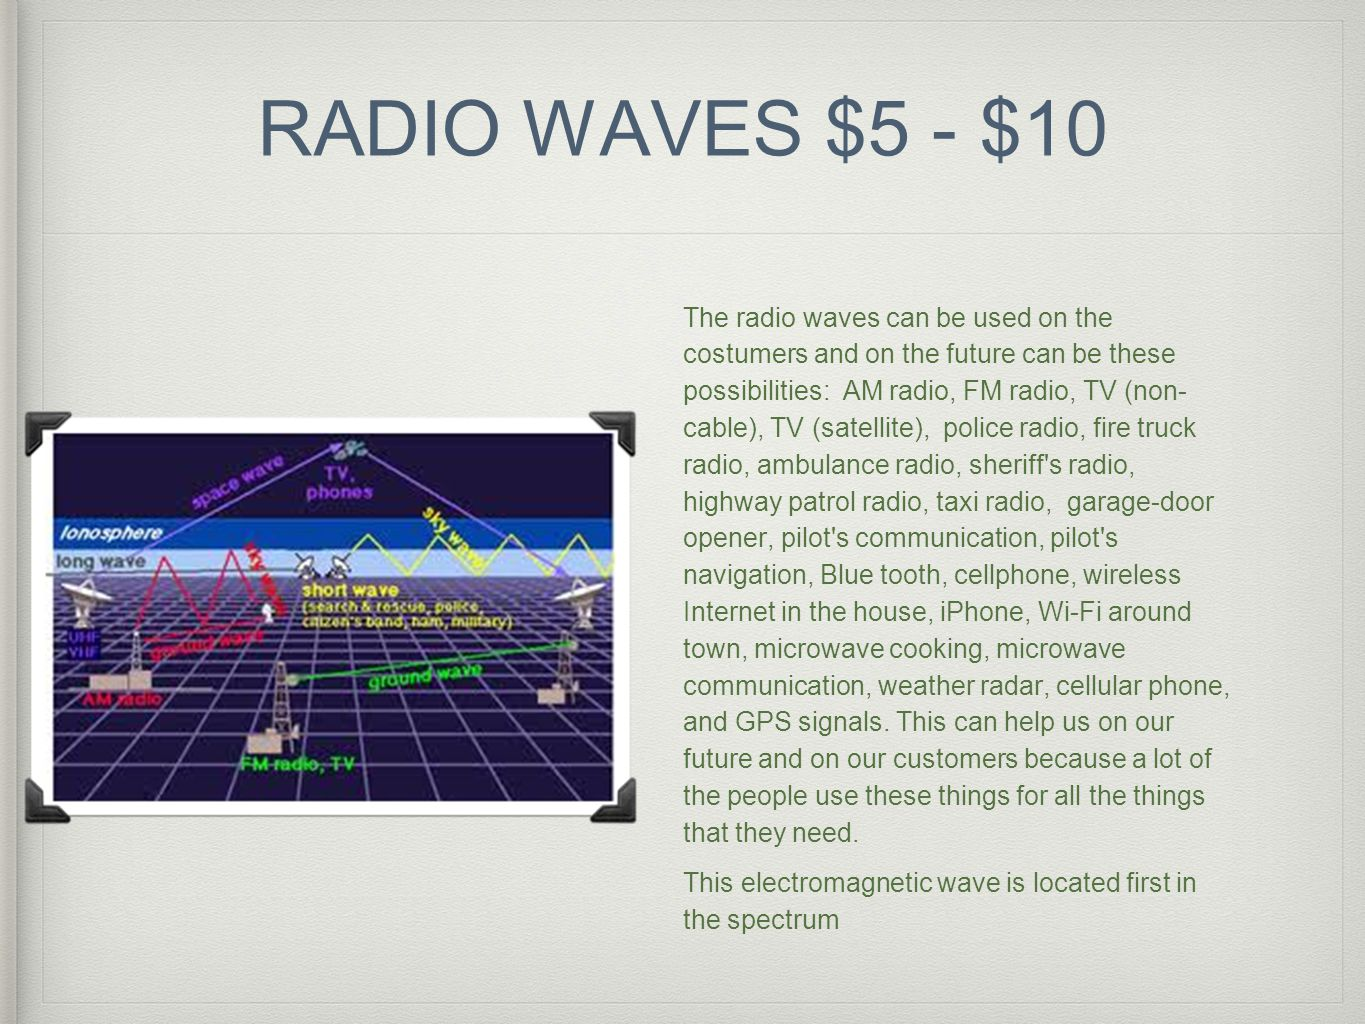 RADIO WAVES $5 - $10 The radio waves can be used on the costumers and on the future can be these possibilities: AM radio, FM radio, TV (non- cable), T